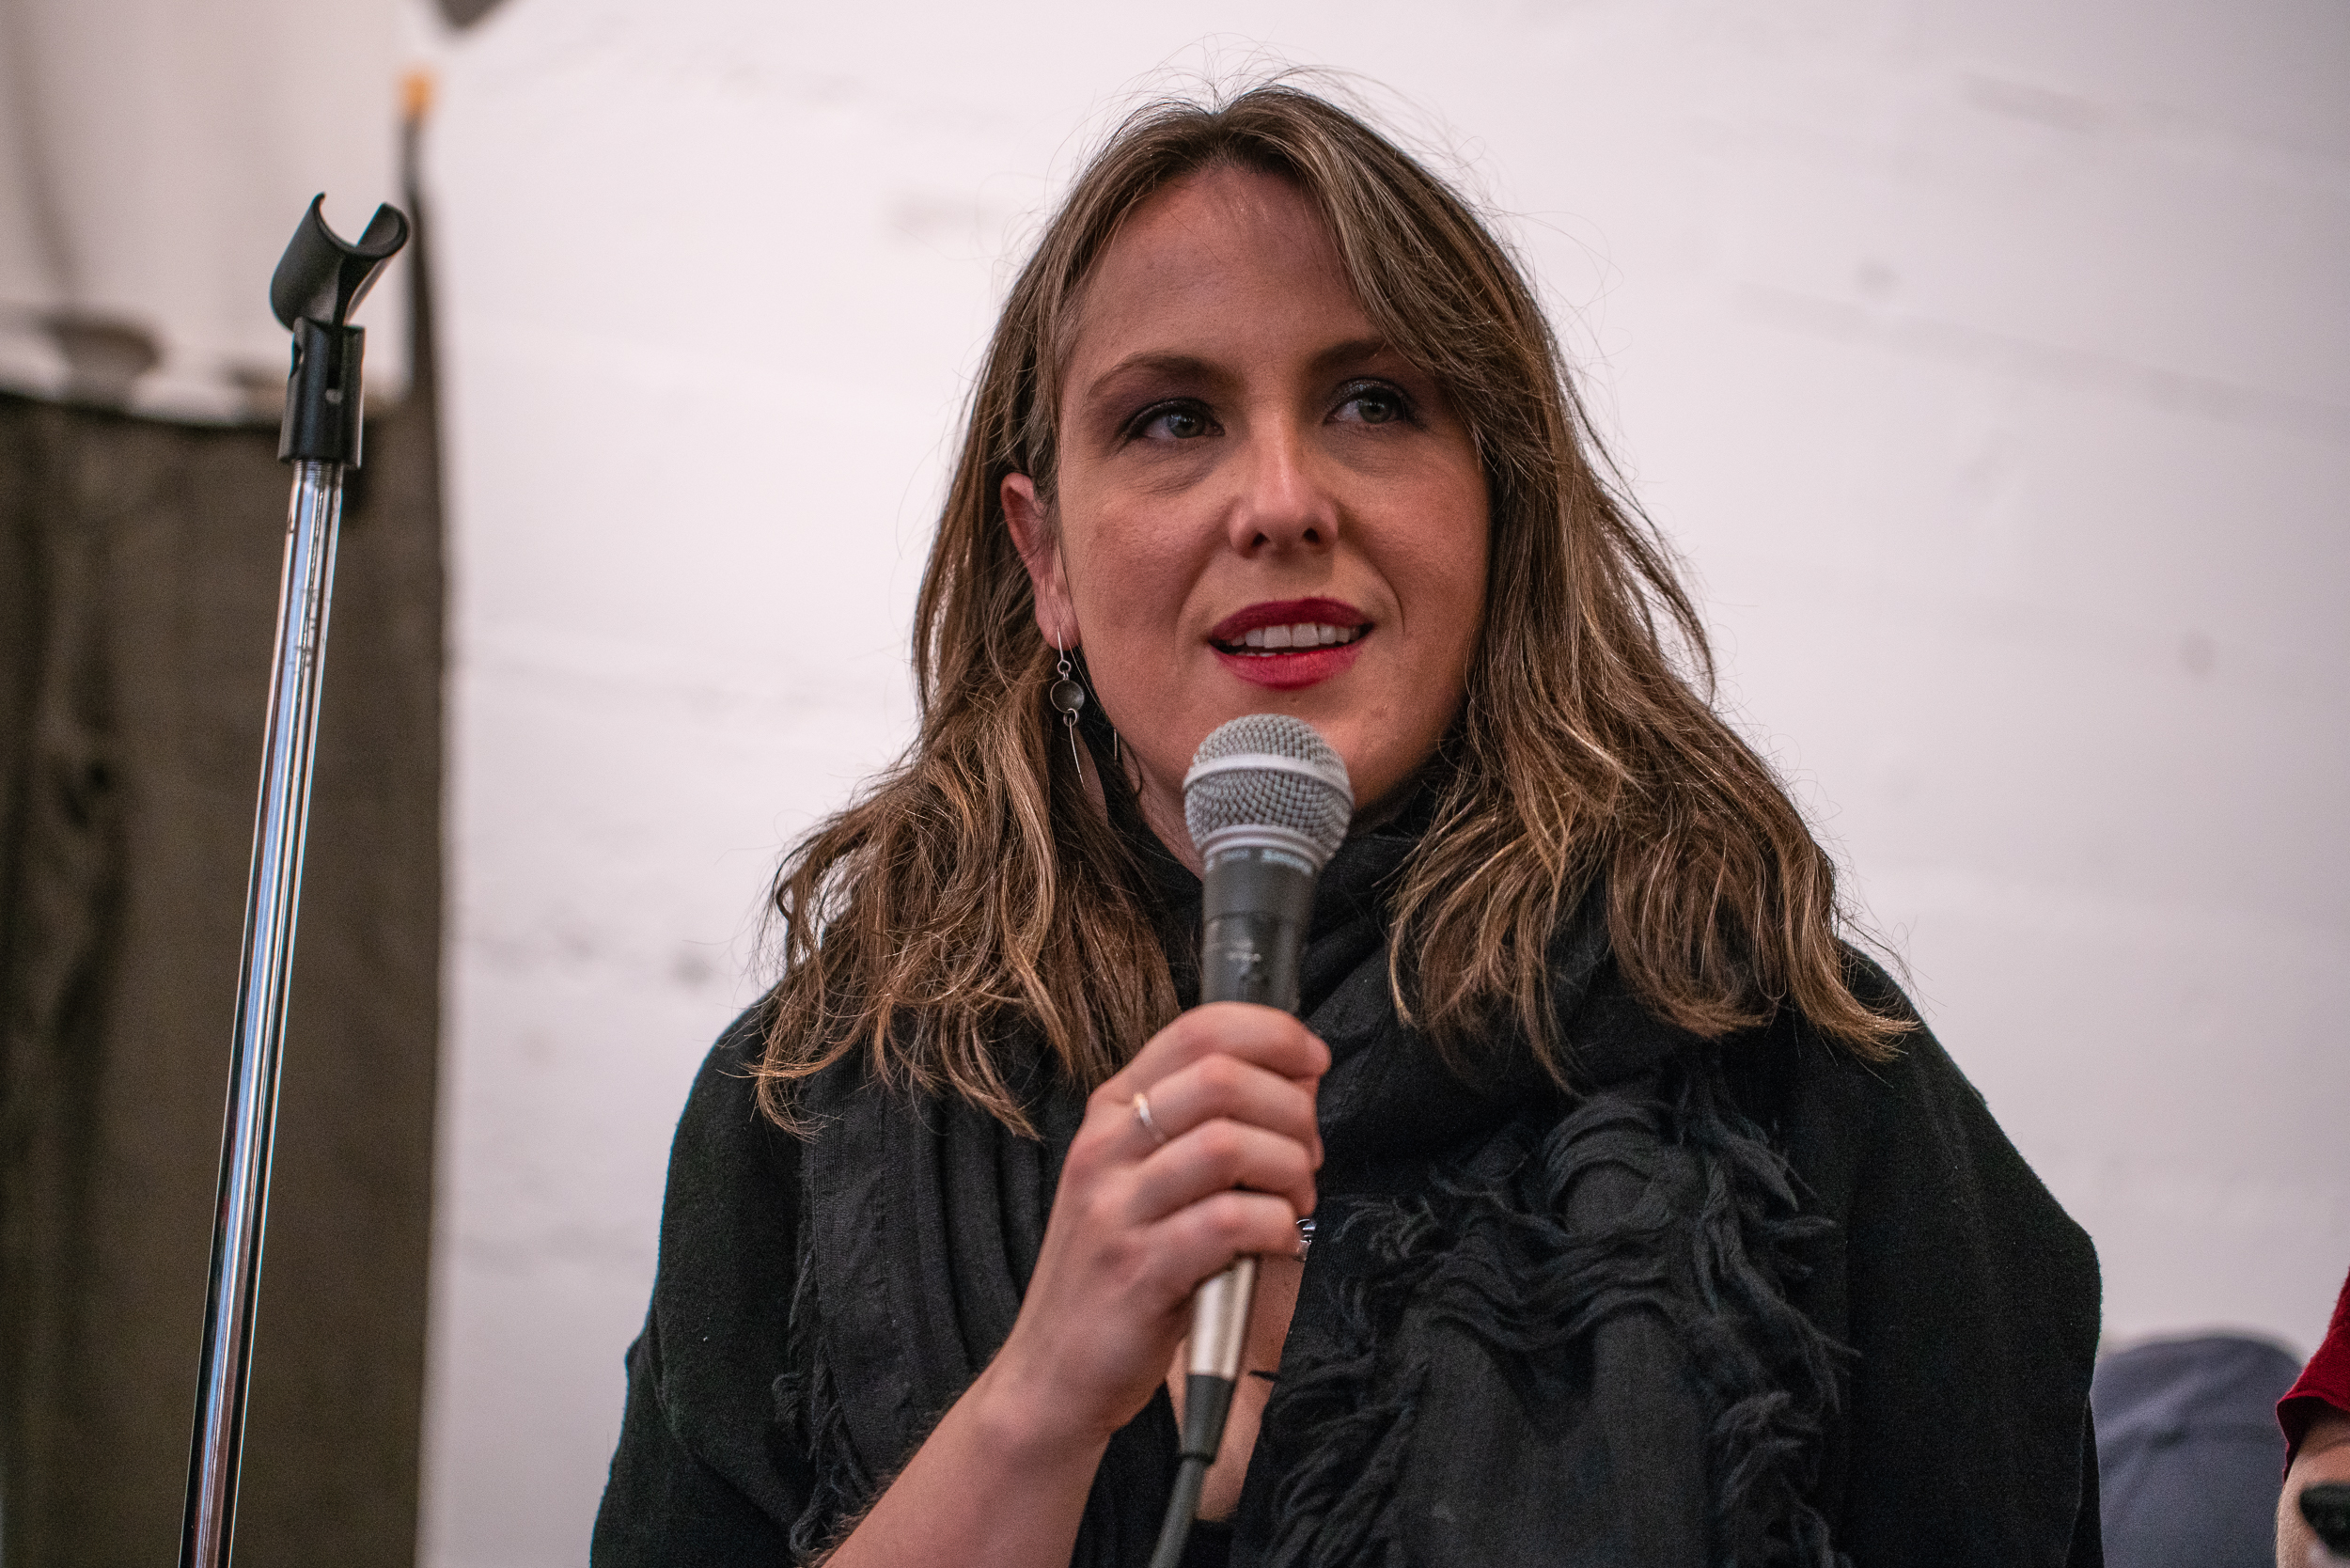 MaterialRevolution_KrisKish-22.jpg